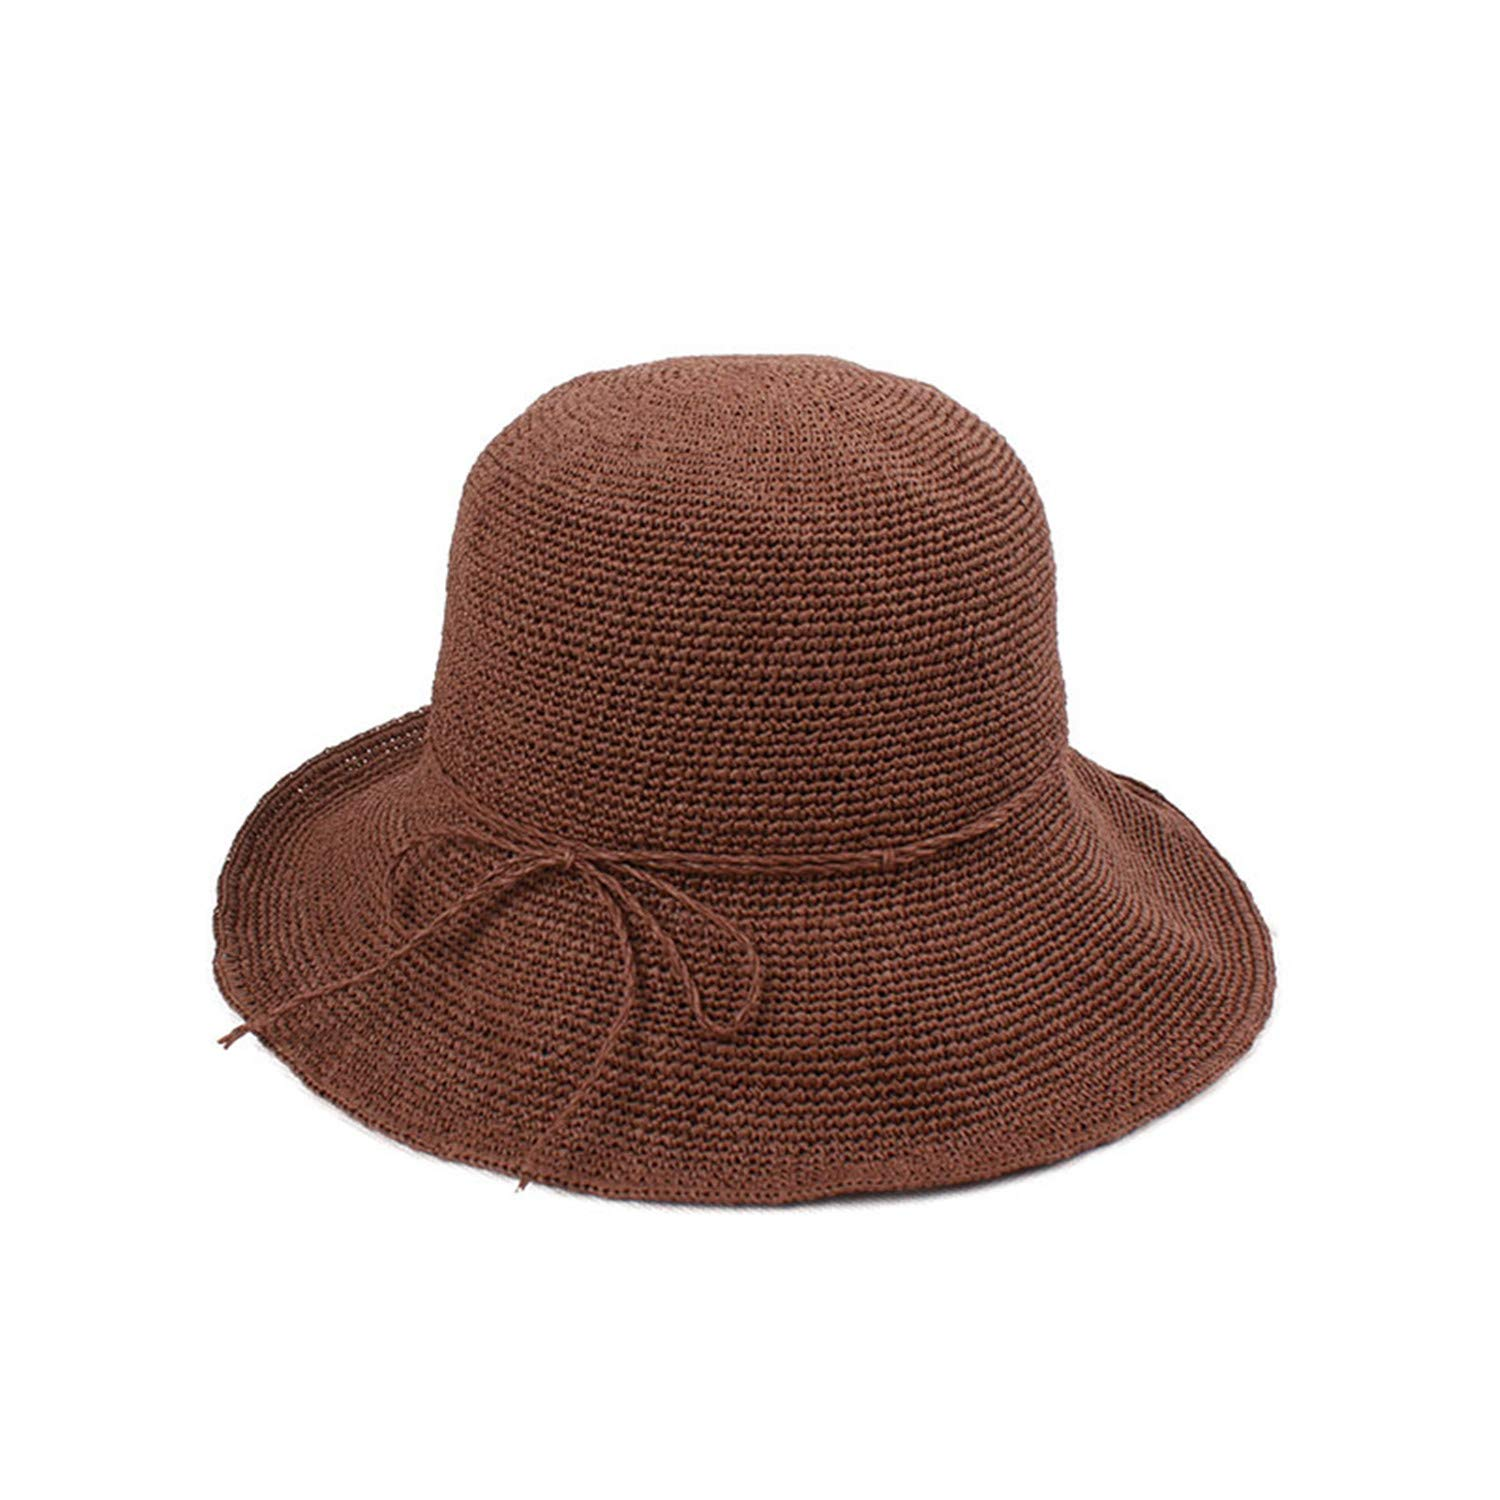 Mastojonster Straw Bucket Hat Women Sun Hats for Ladies Packable Hats  Crochet Hat 1 57Cm at Amazon Women s Clothing store  747e16bf119